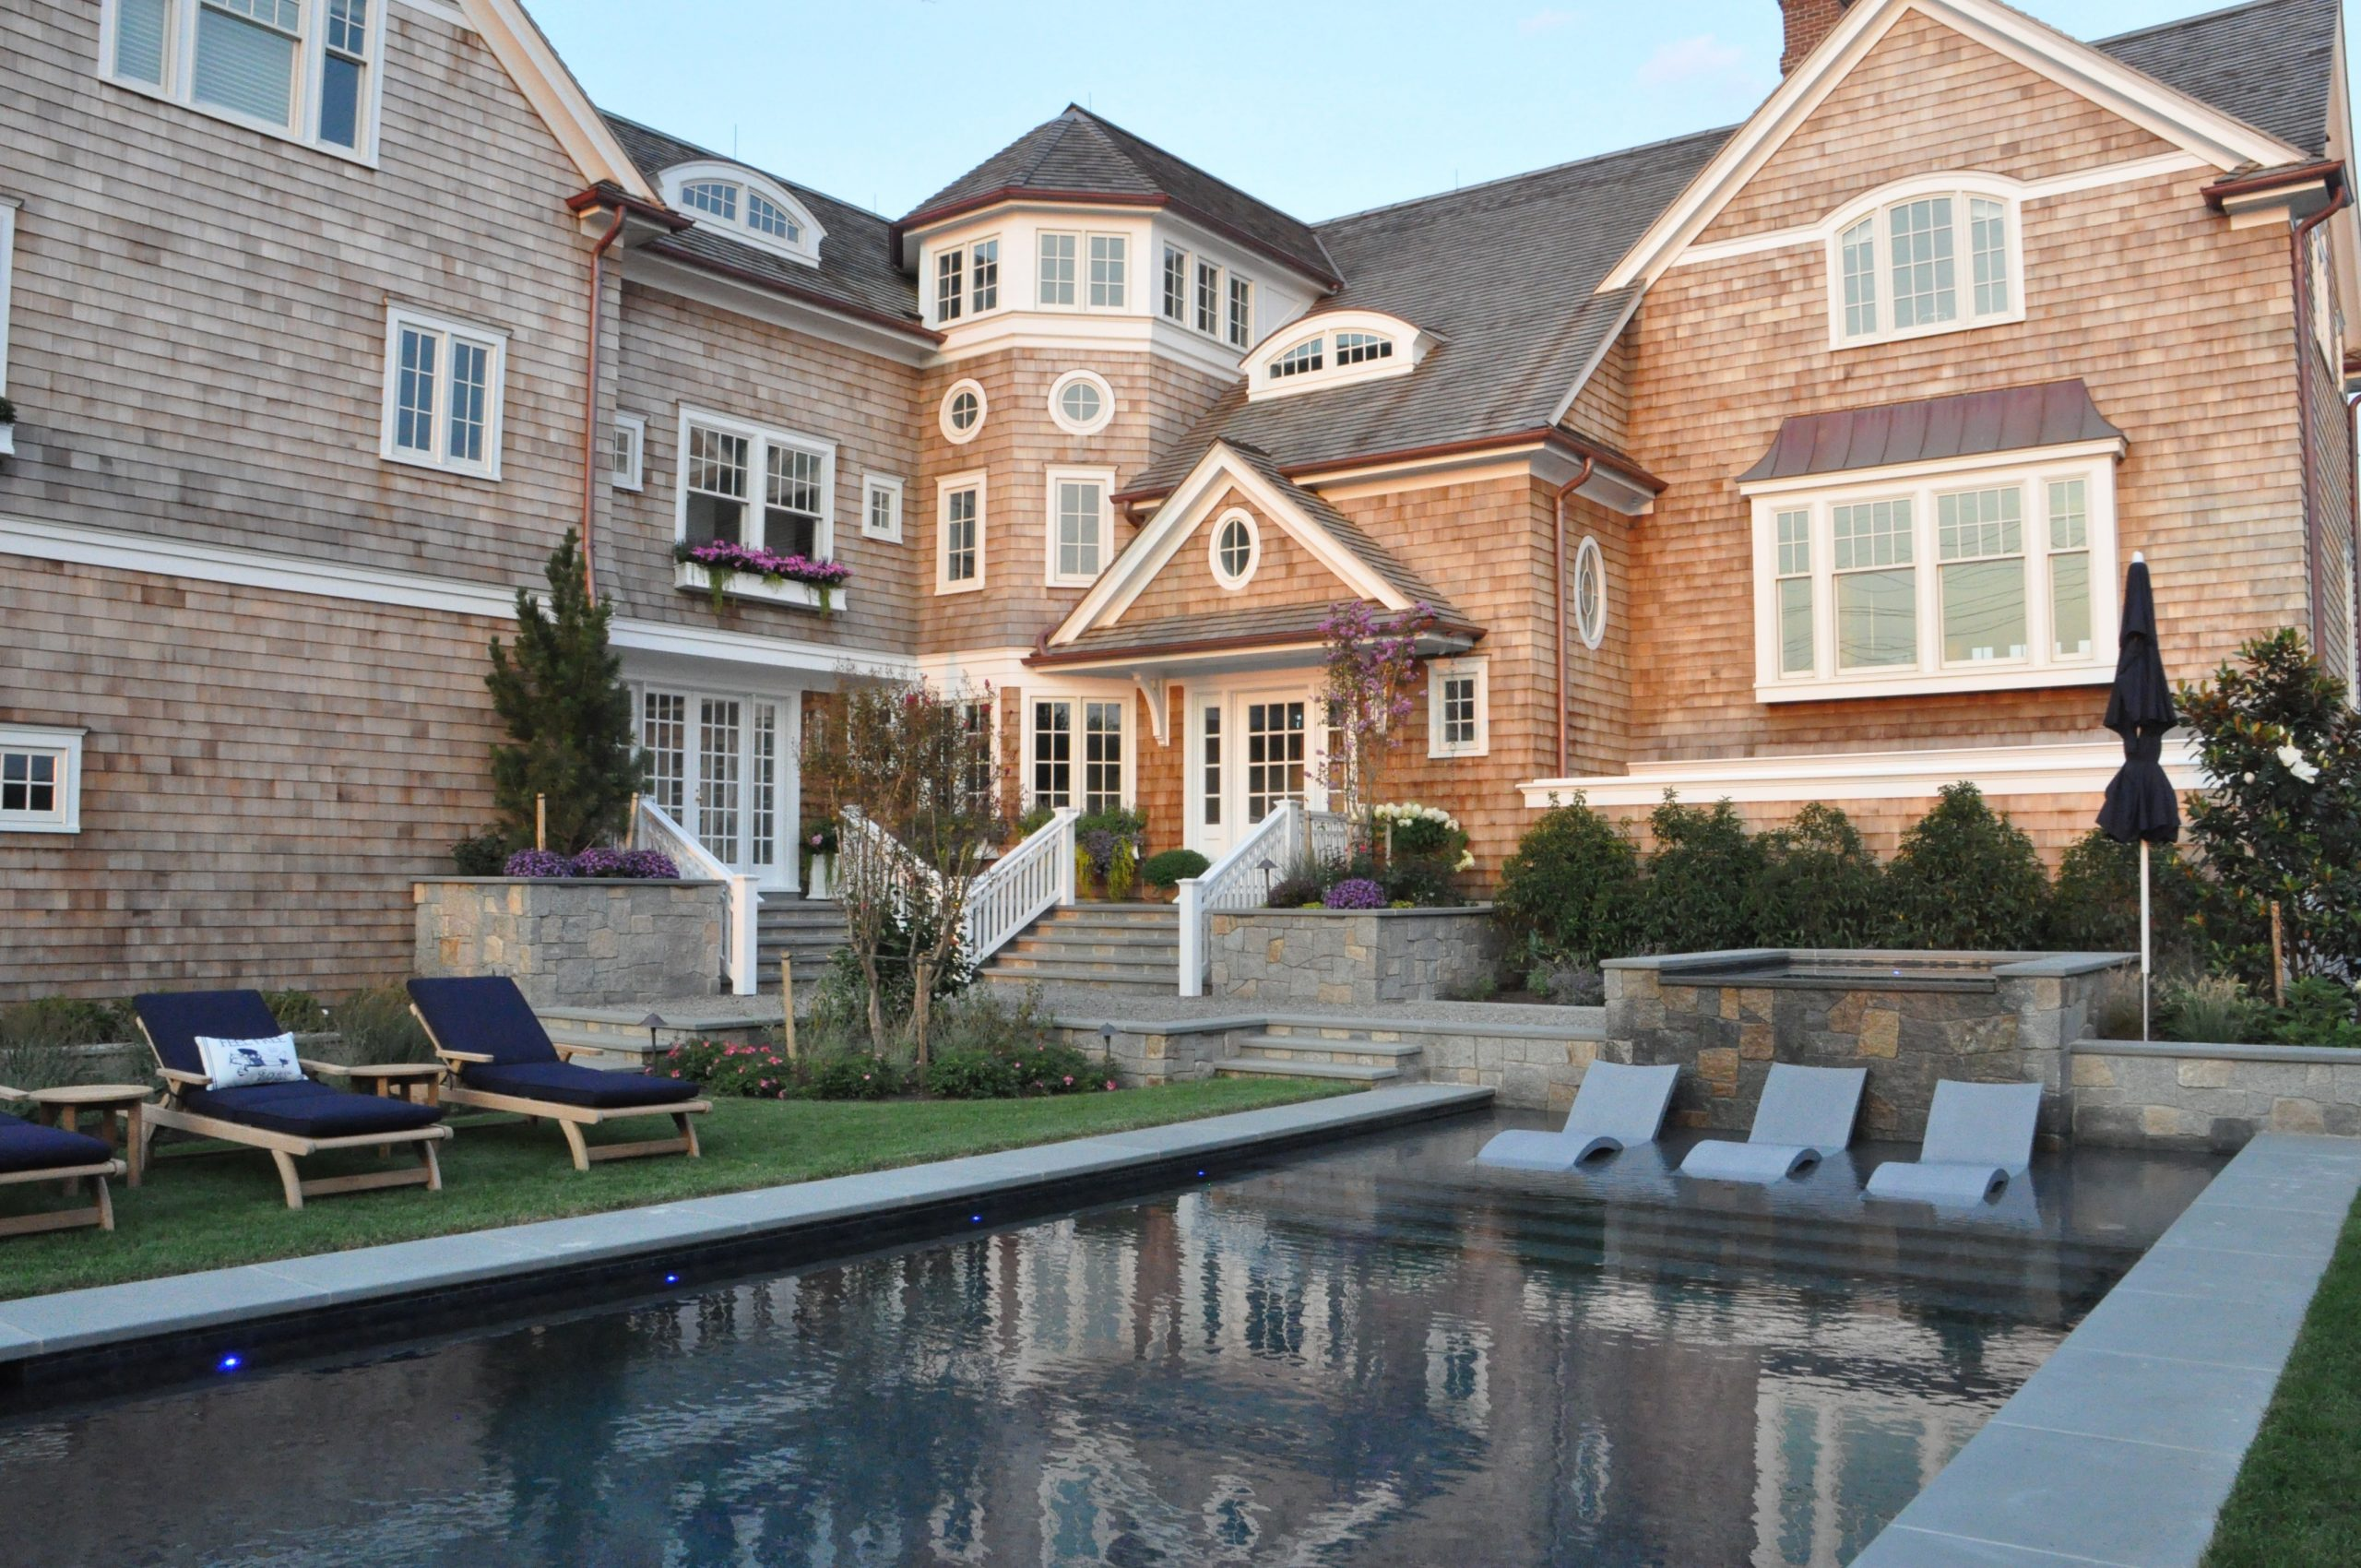 Wood cedar shake siding with white trim and a brown shingled roof. Brown gutters. White front door. Brown stone veneer. Metal accent roof. In ground pool with blue stone border.